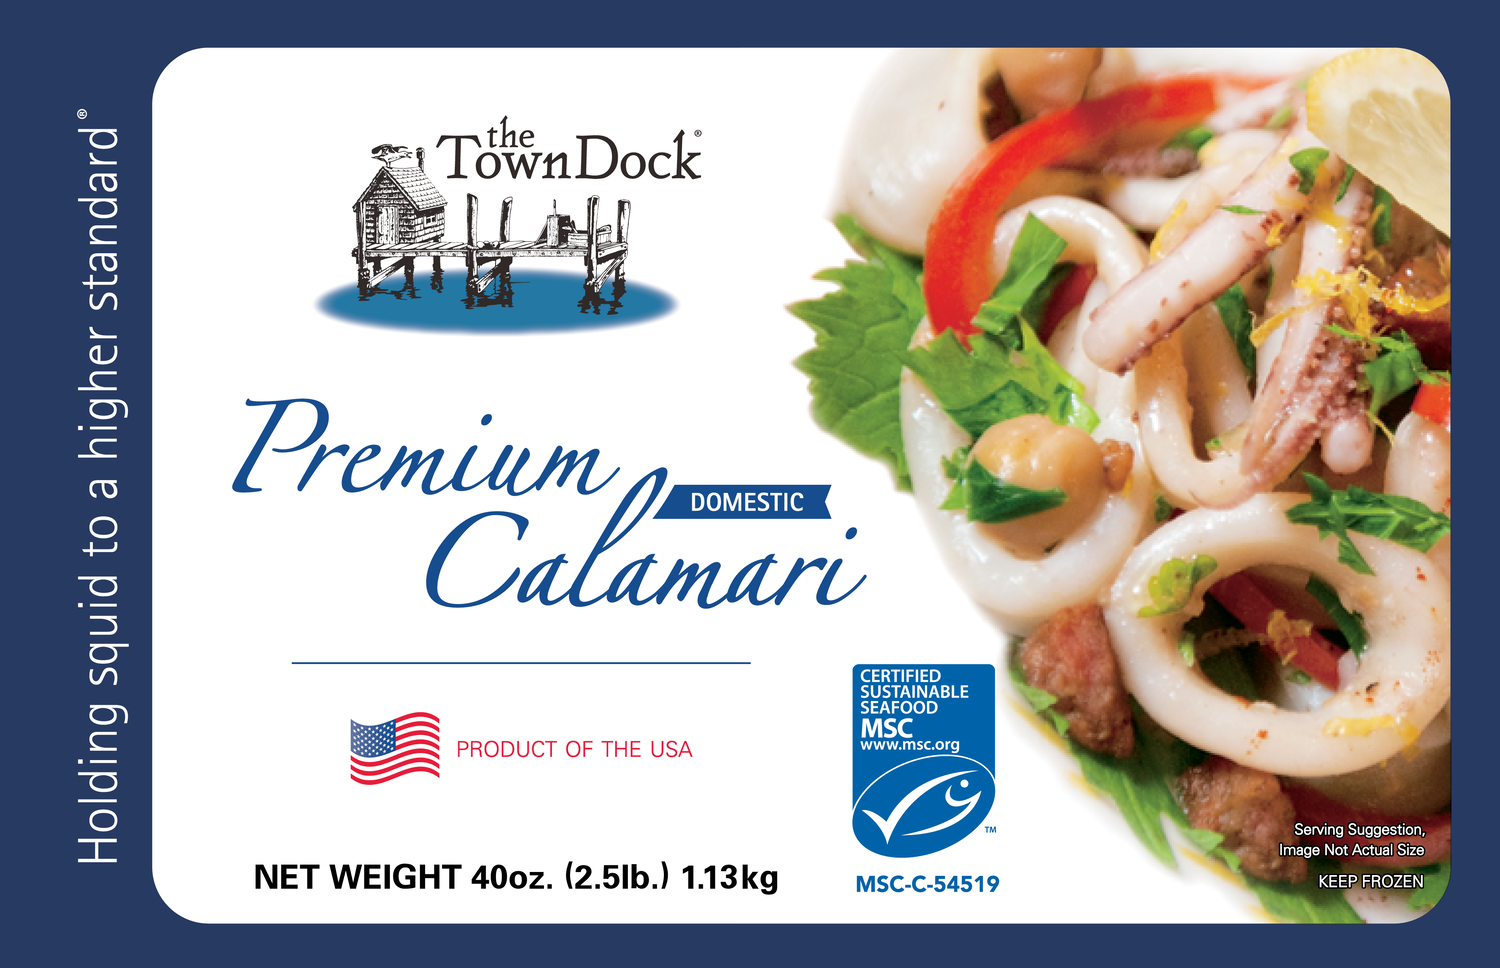 Premium Domestic Calamari